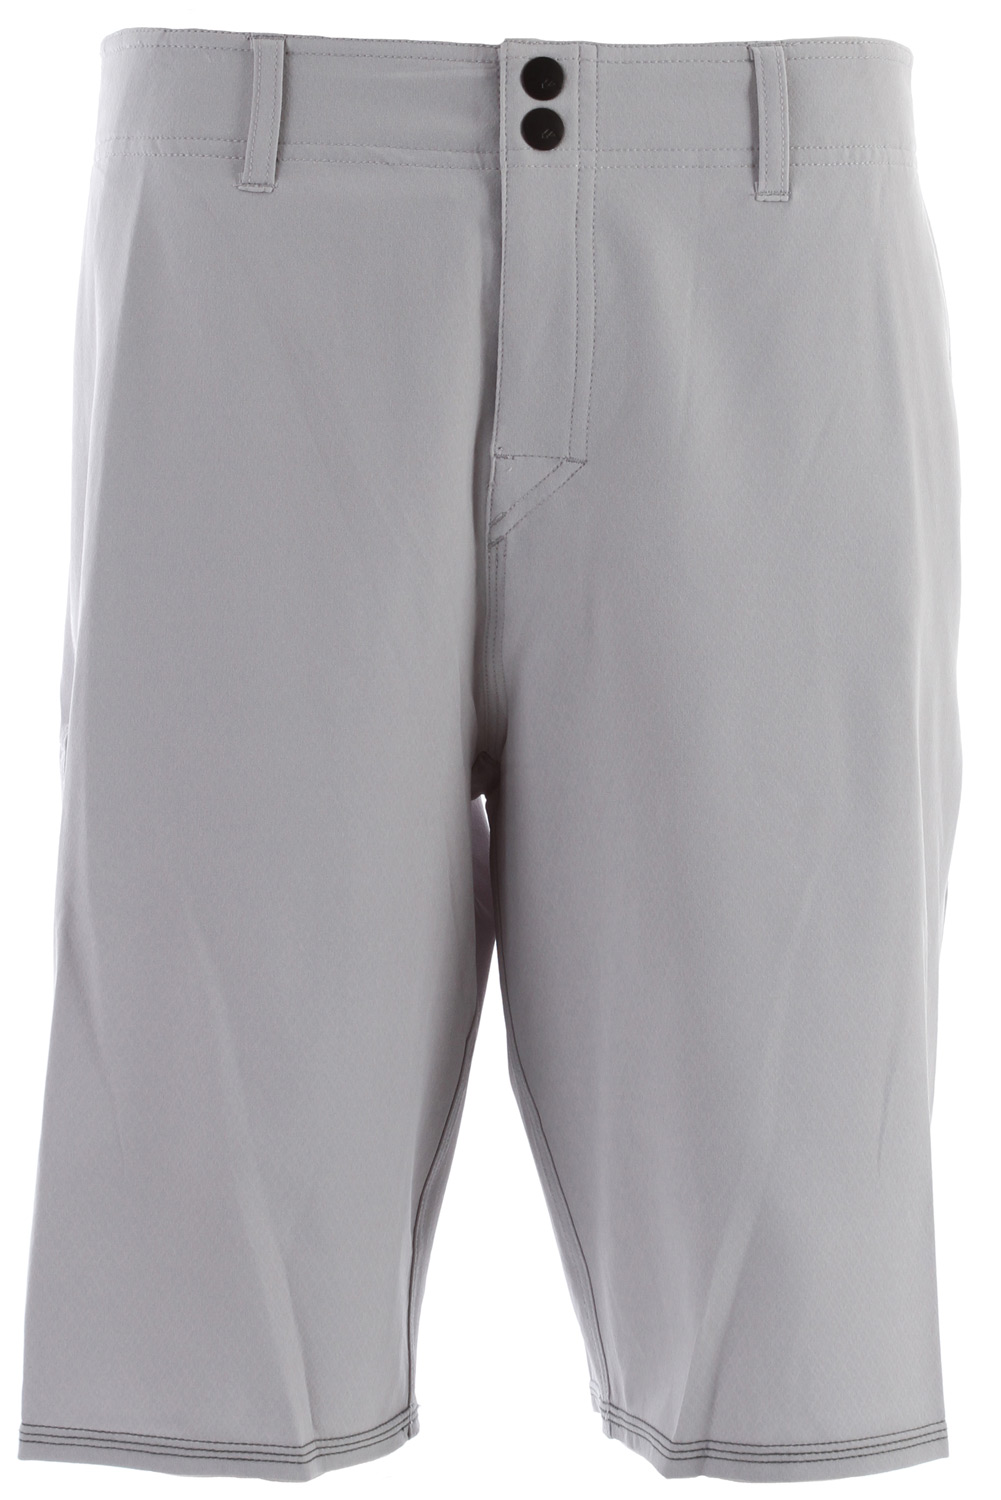 Surf Key Features of the Quiksilver Green Horn 22In Amphibians Shorts: 22 inch outseam Water repellent Diamond Dobby DLX Diamond fly Stretch stitch hems - $35.95